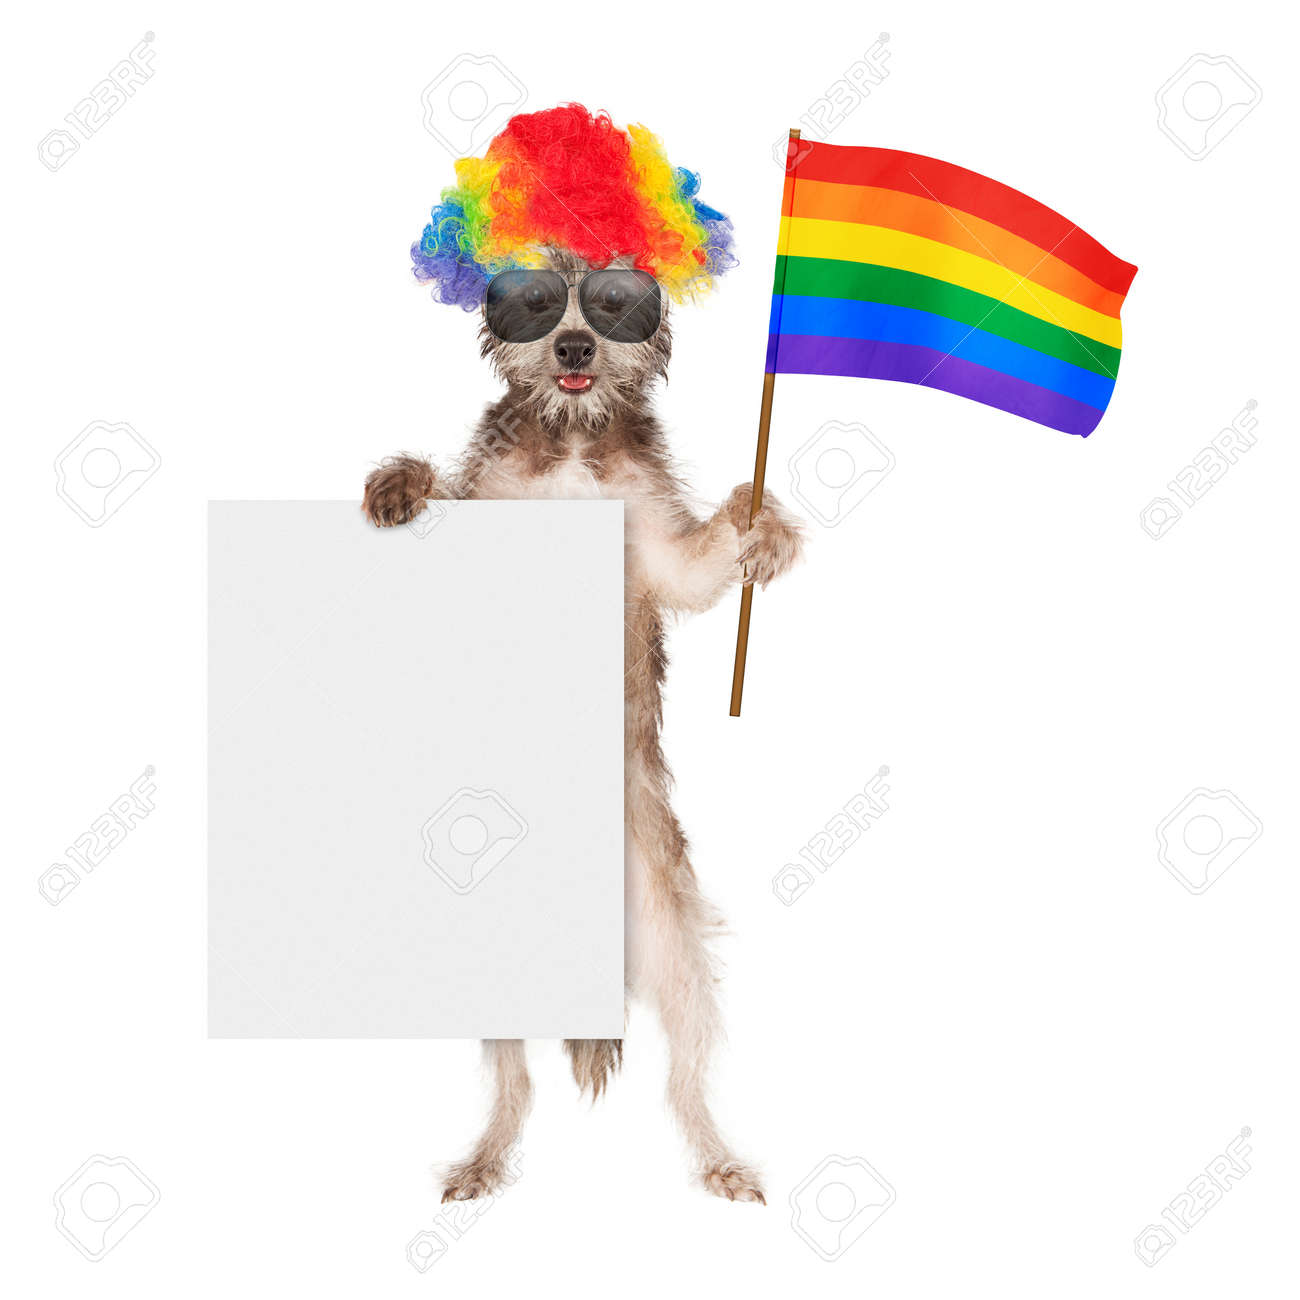 funny dog dressed for a gay pride parade wearing a rainbow color wig and sunglasses while - Blank Rainbow To Color